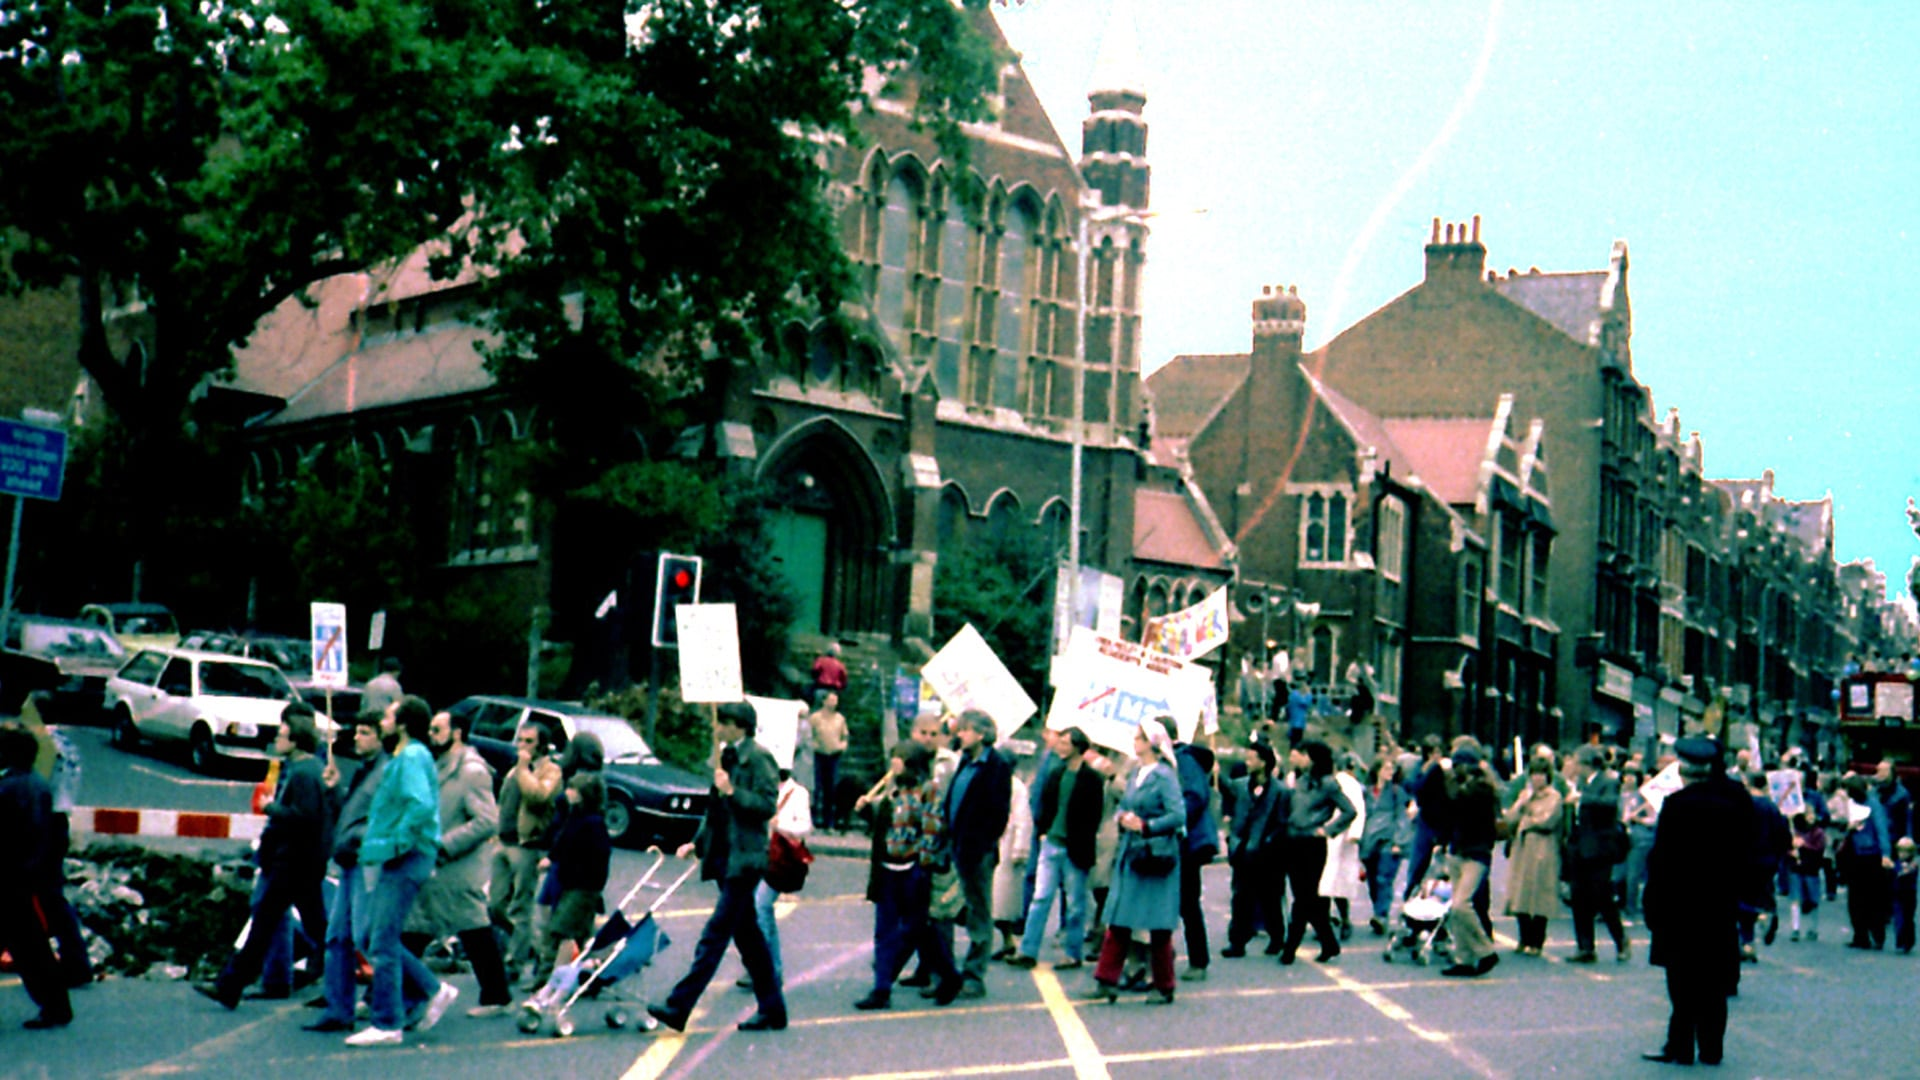 Scenes from a protest